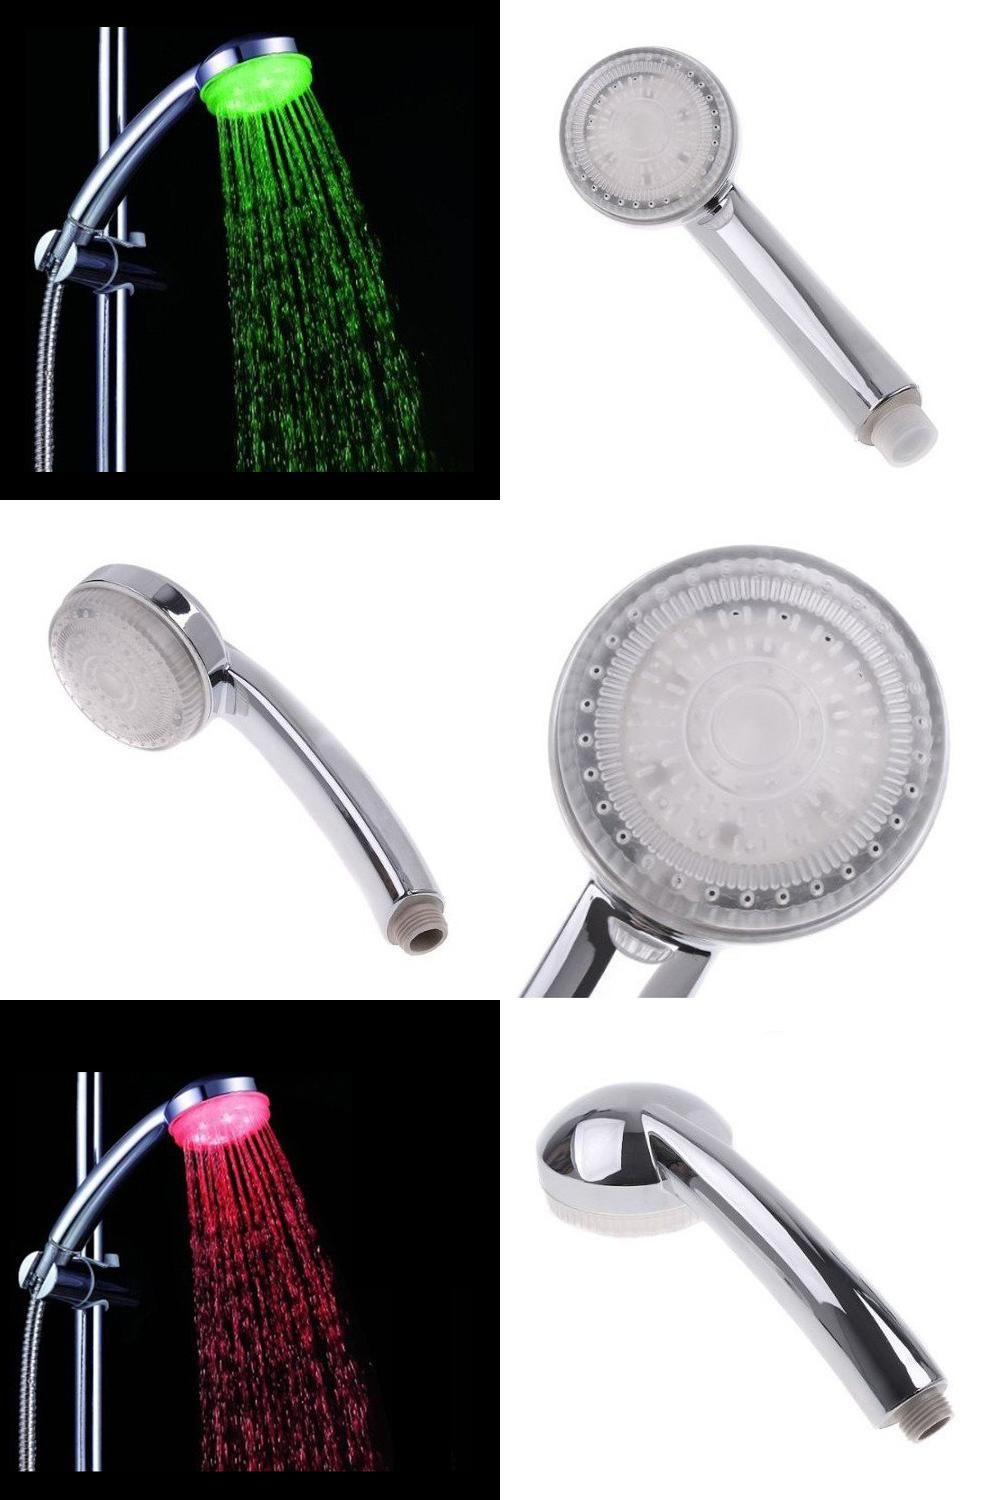 Visit To Buy 7 Colour Changing Light Faucet Plumbing Shower Head